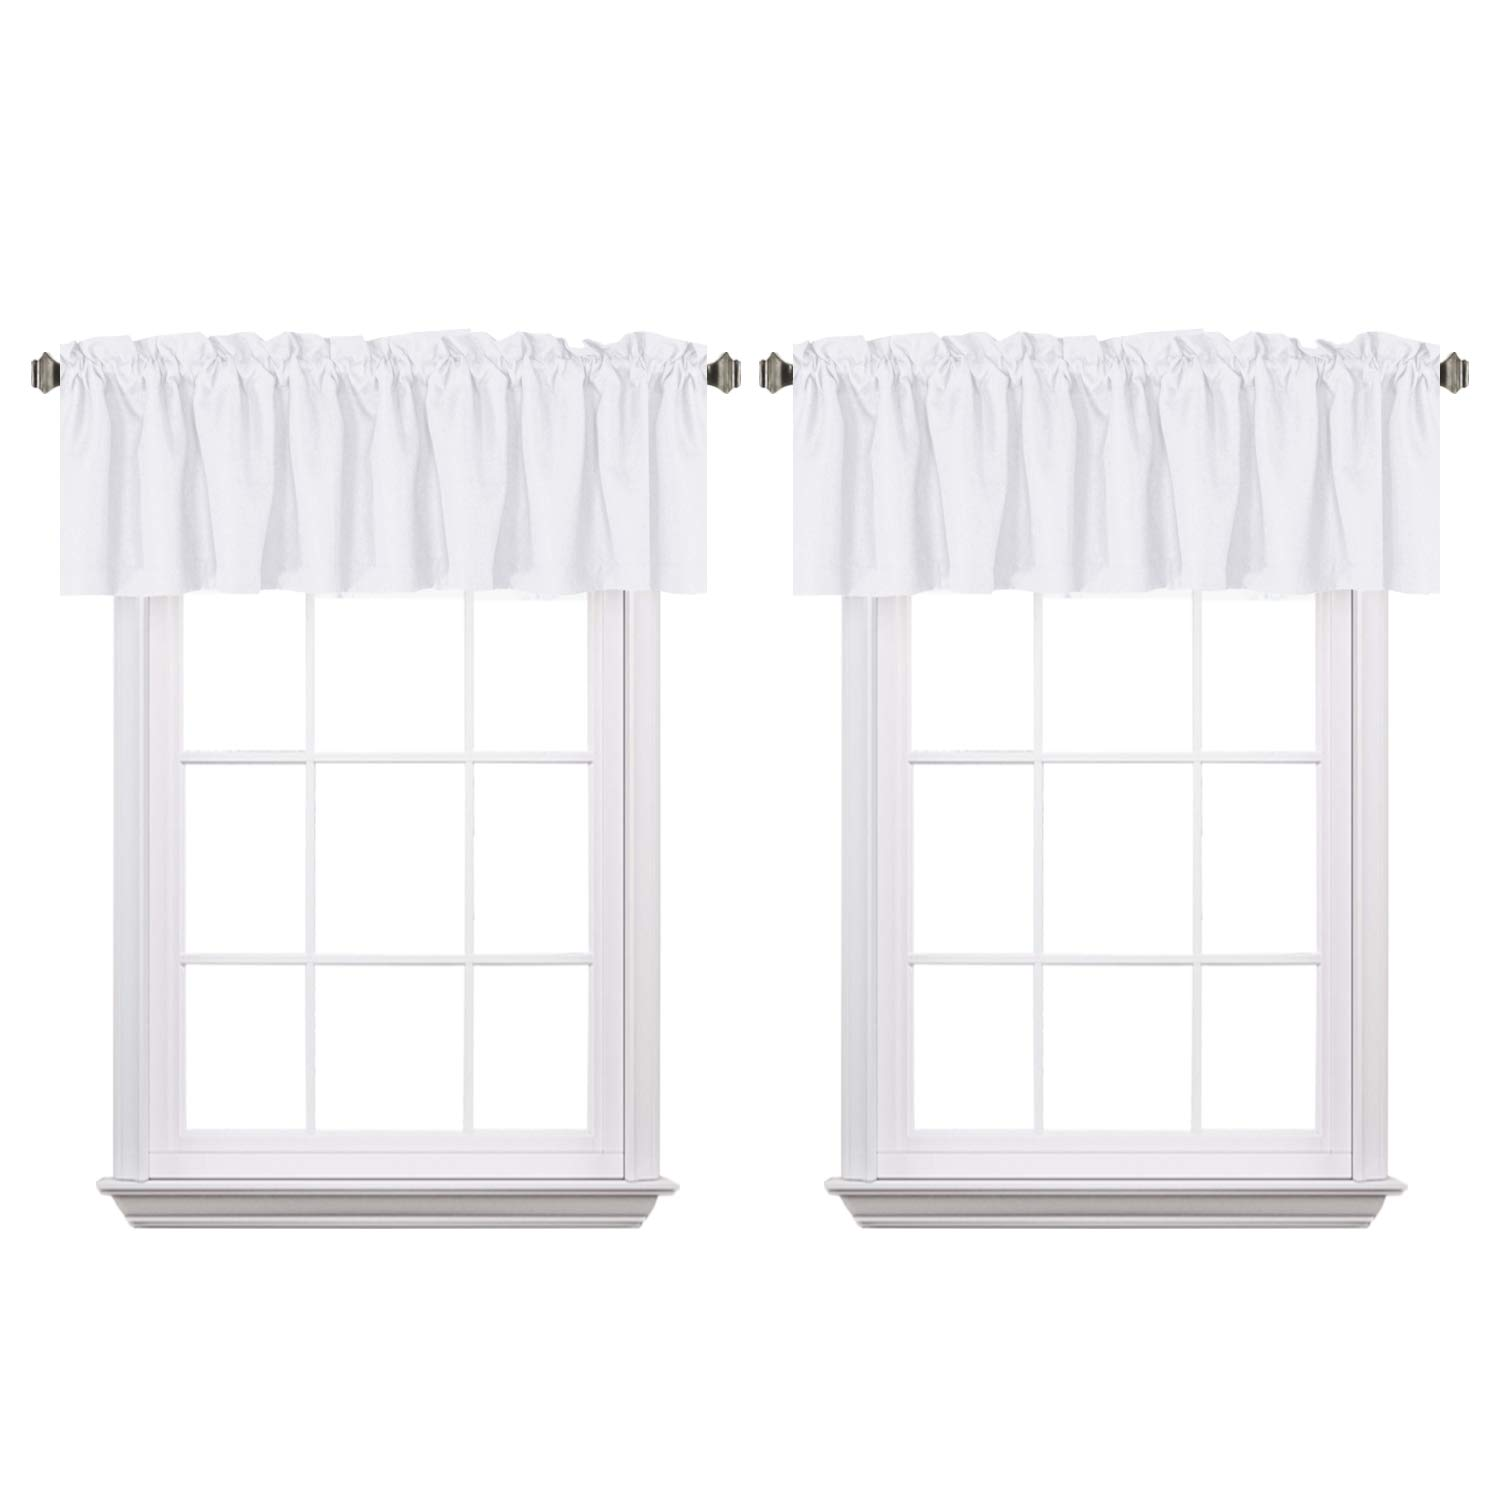 H.VERSAILTEX Pure White Window Treatment Curtain Valances Thermal Insulated Room Darkening Primitive Faux Linen Valances for Living Room, Rod Pocket, 2 Pack, 52 x 18 - Inch